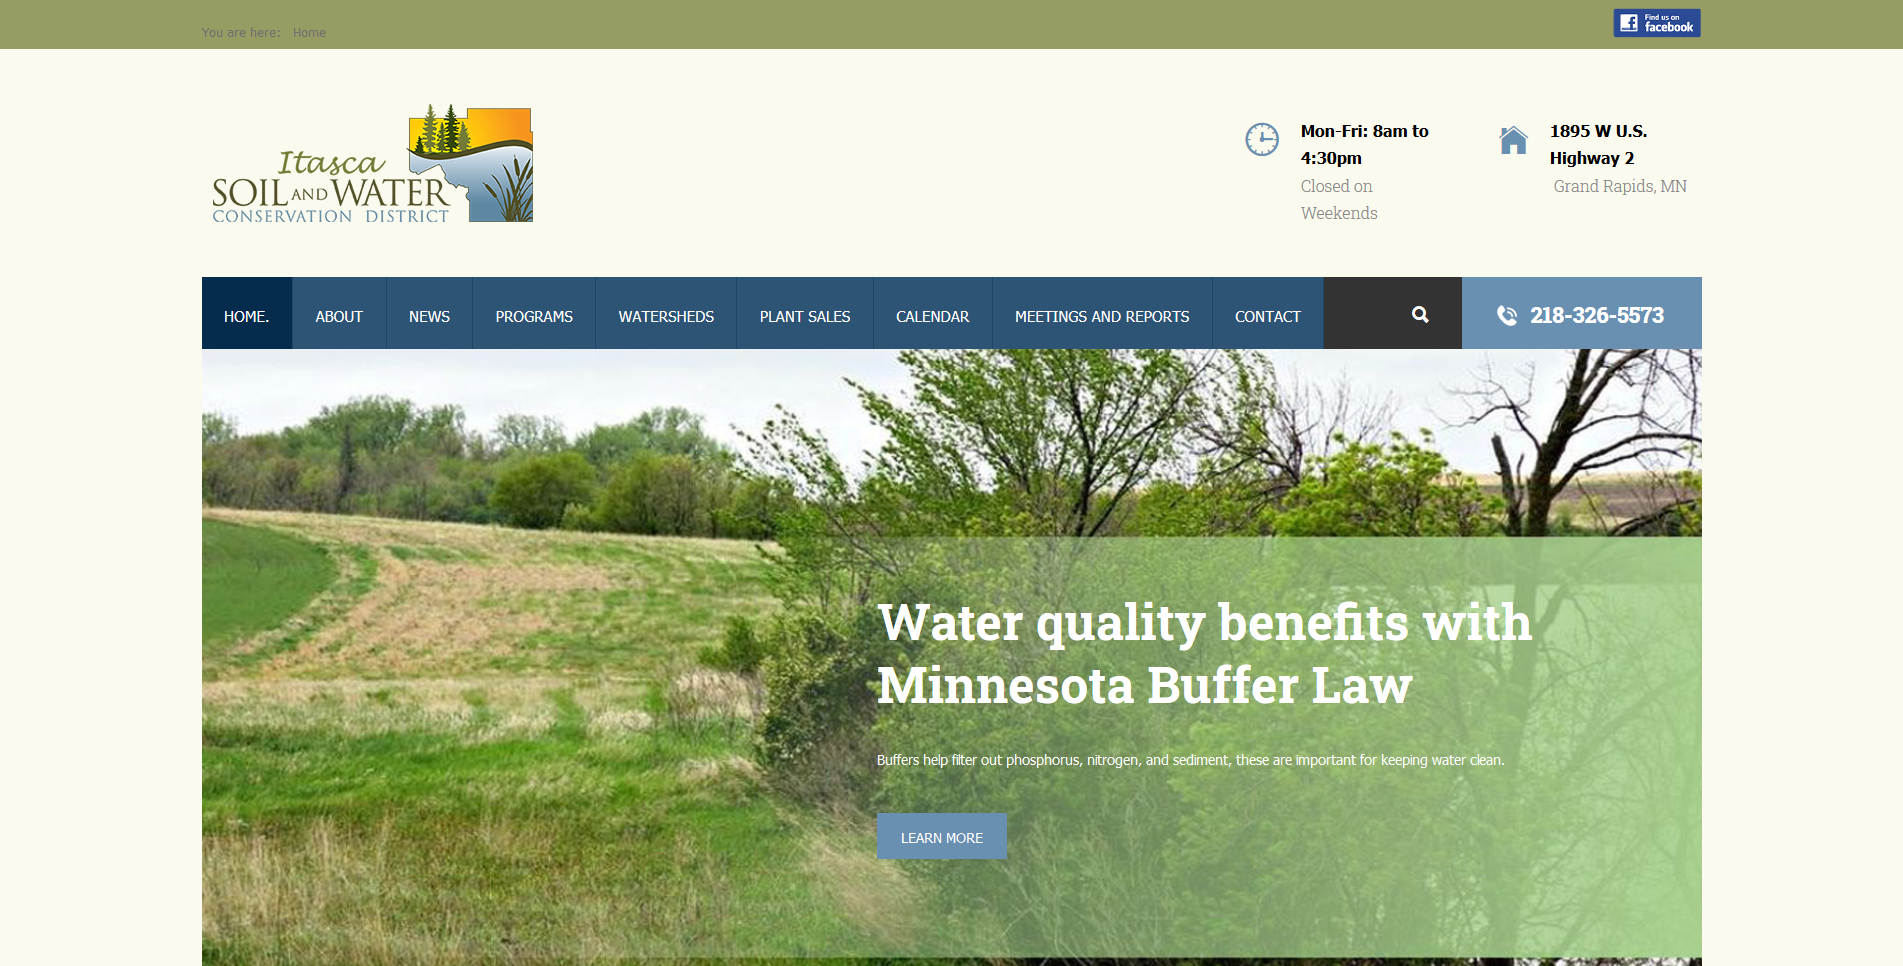 Conservation District website by Big Groovy Designs